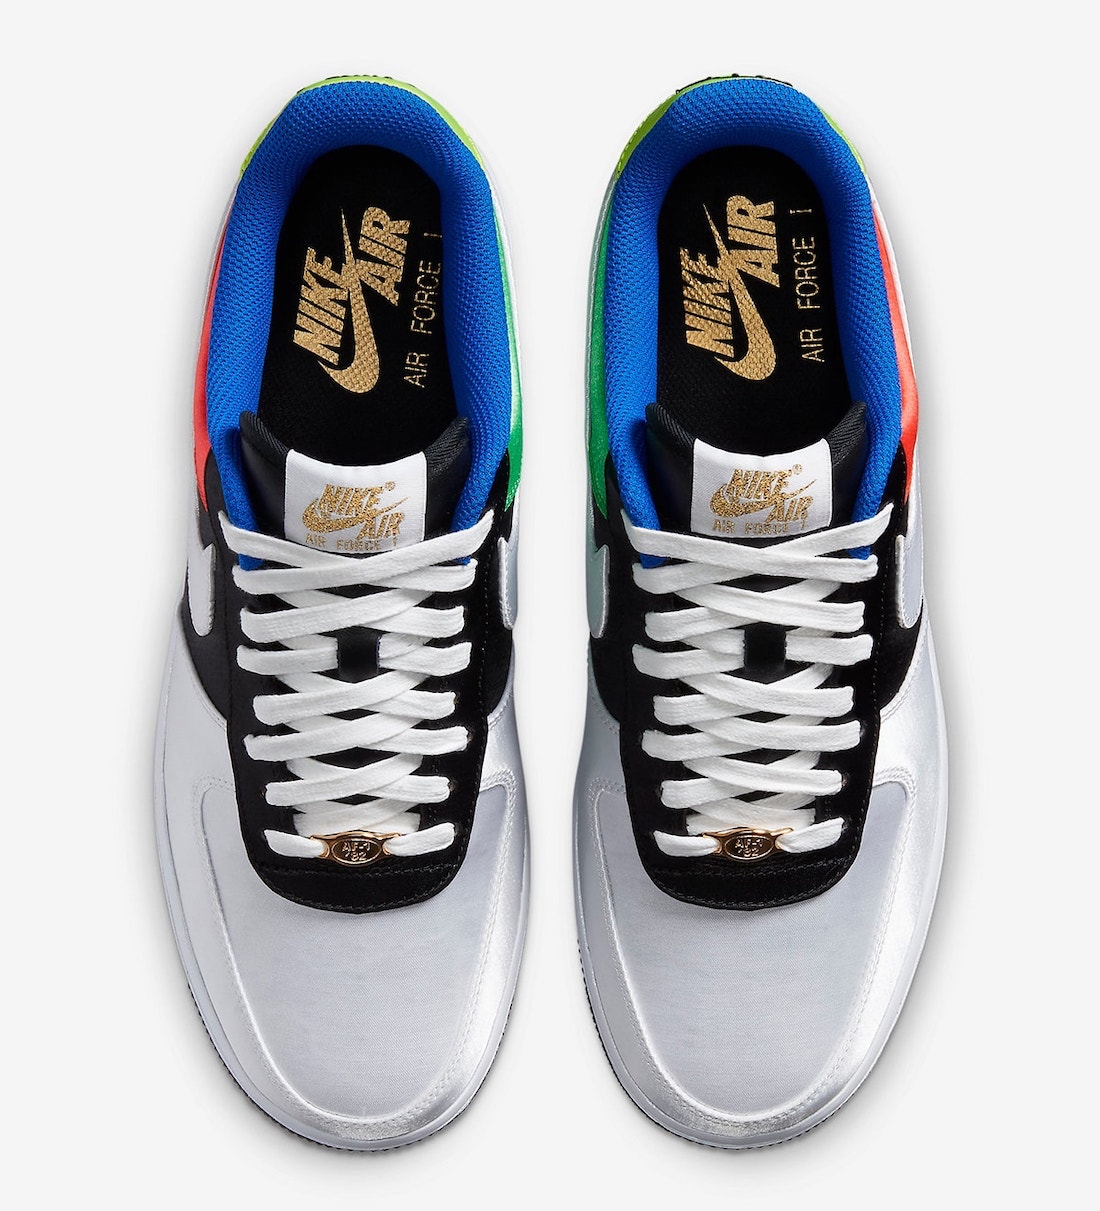 Nike Air Force 1 Low Olympic 2020 DA1345-014 Release Date